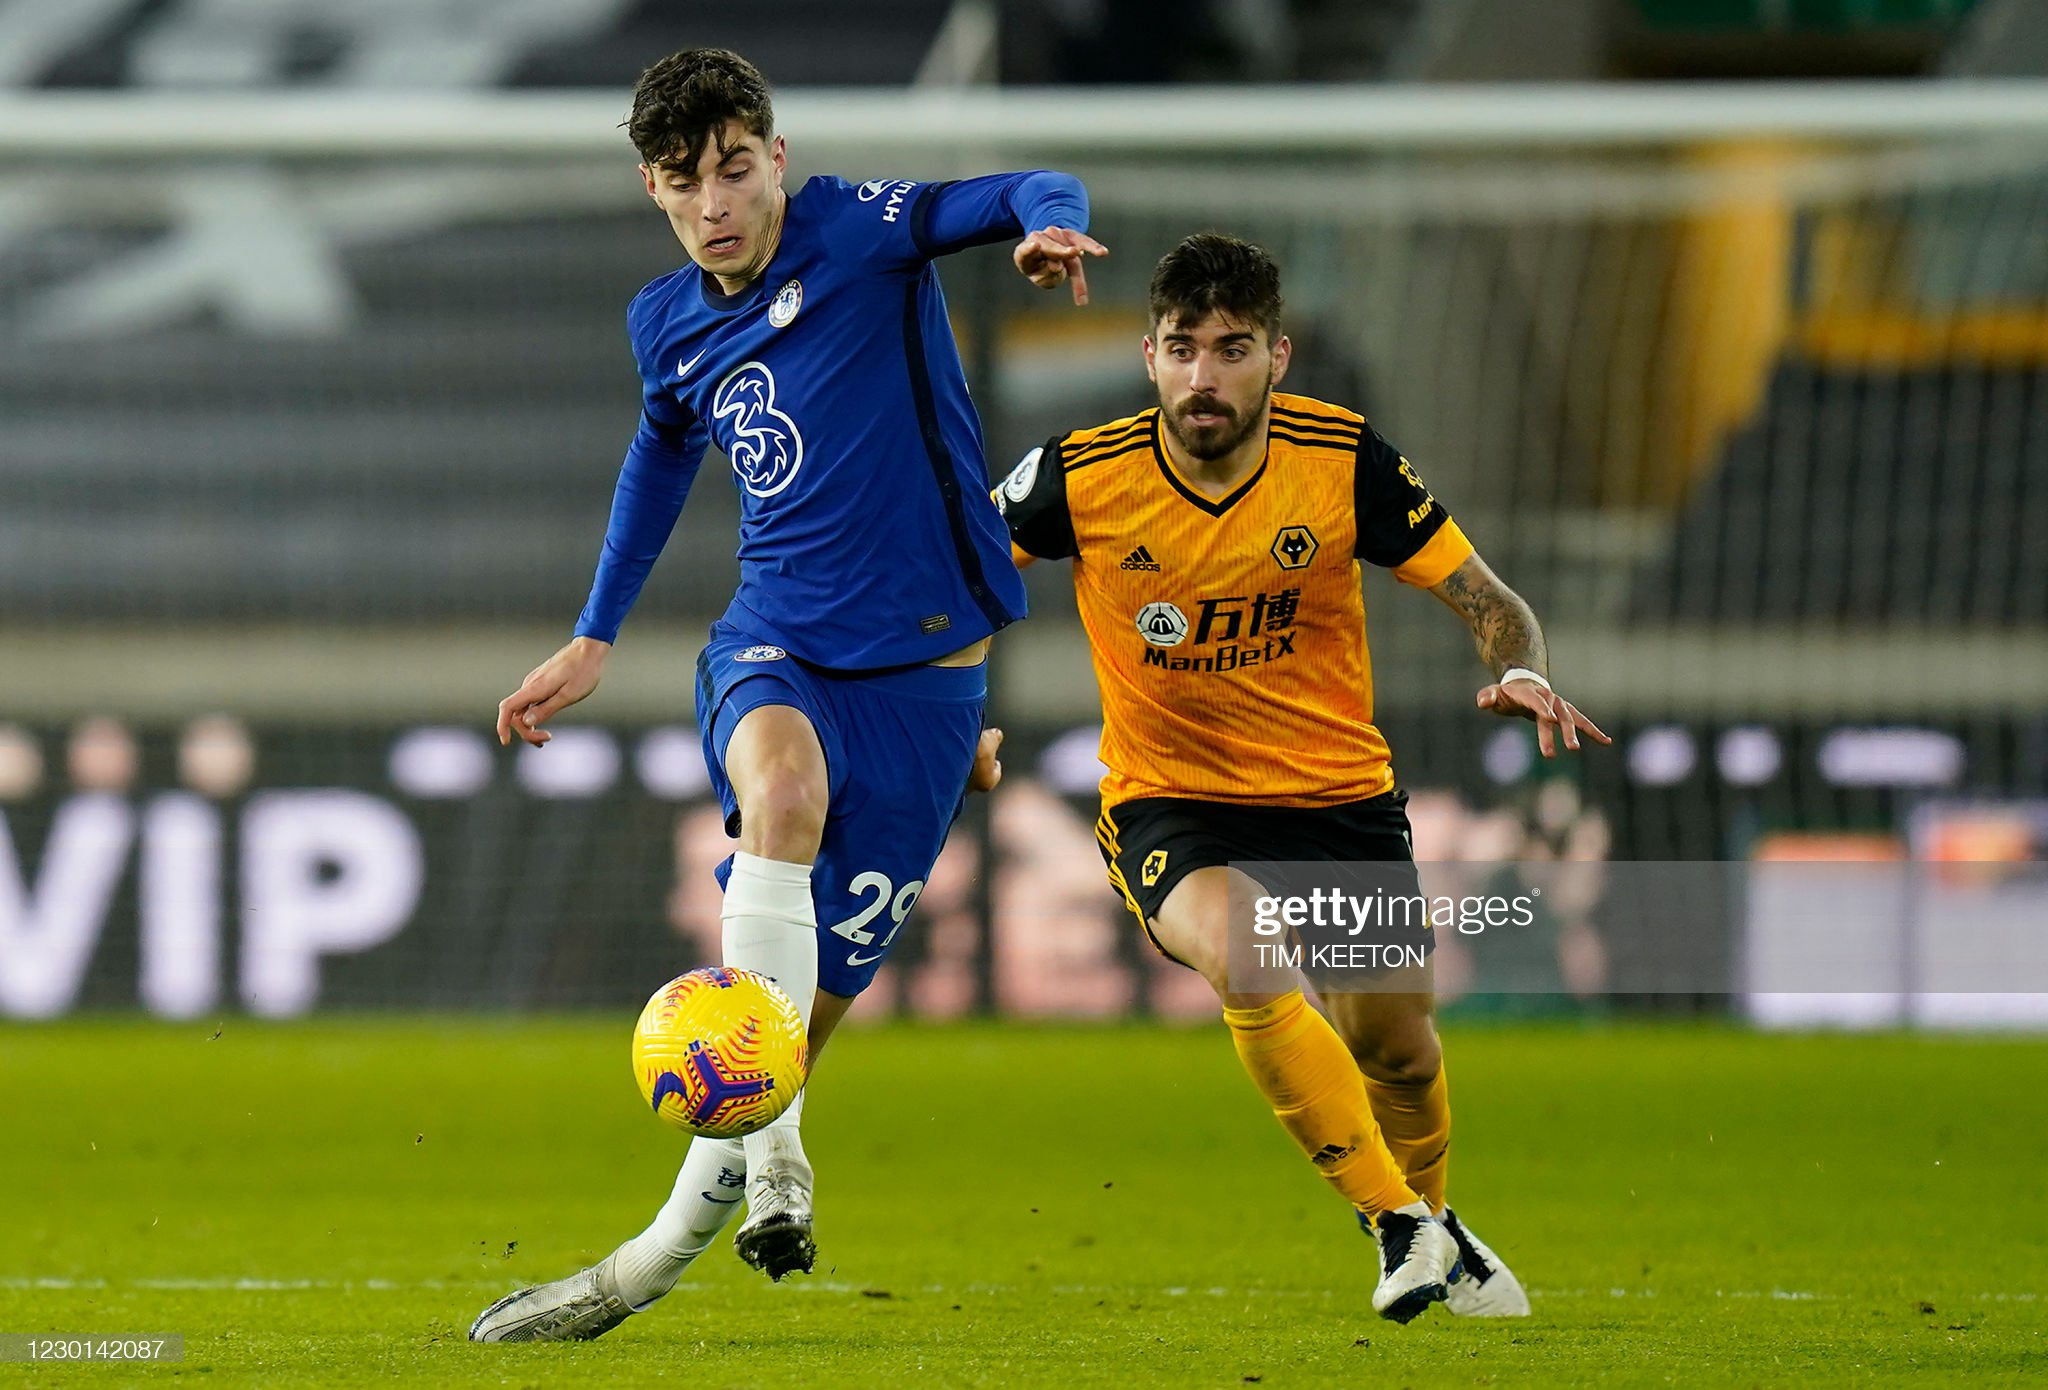 Chelsea vs Wolves preview, prediction and odds